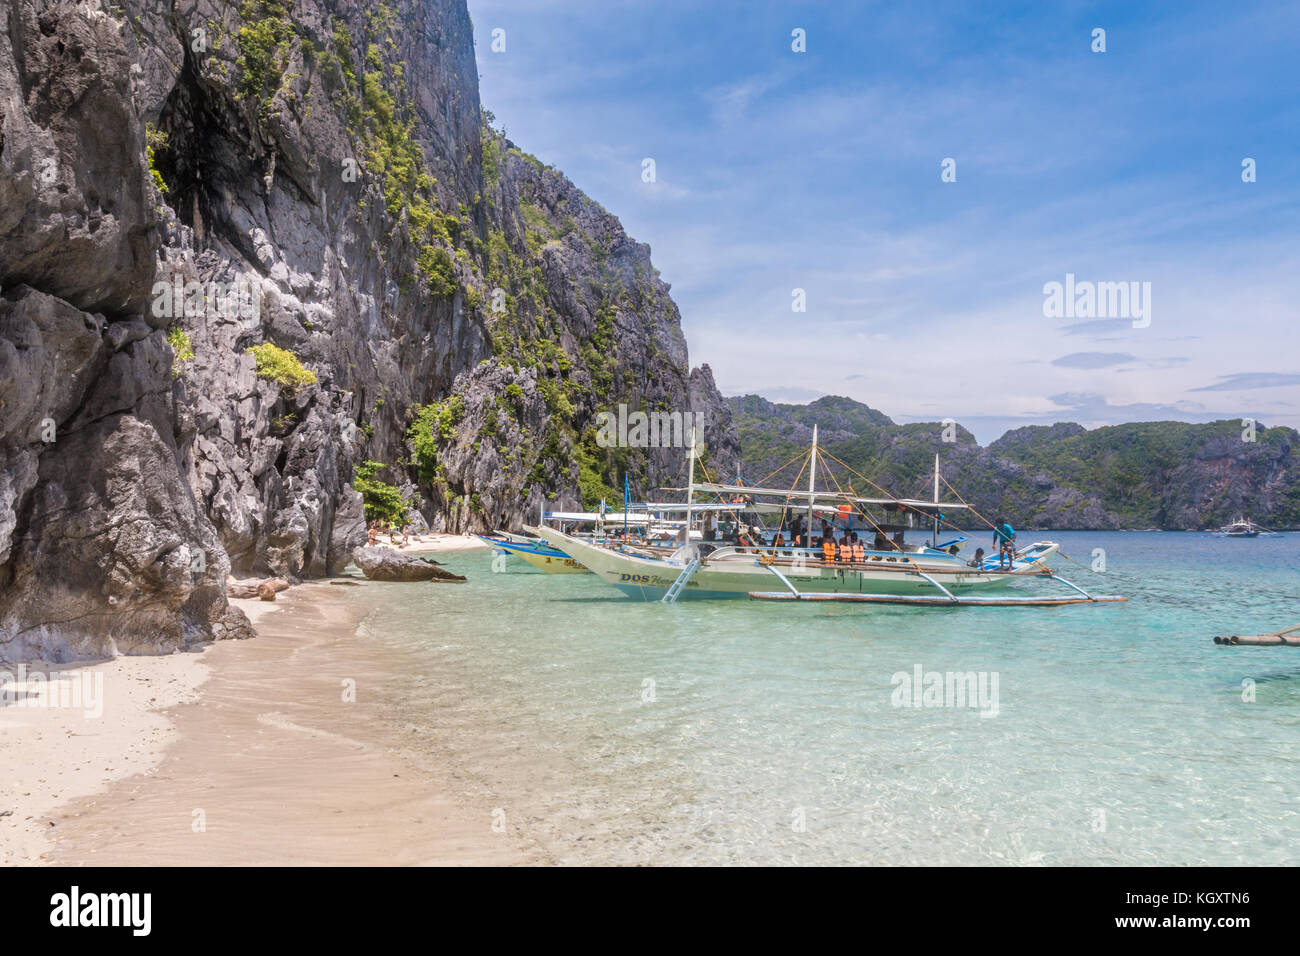 Beach in El Nido Palawan Island Philippines - Stock Image